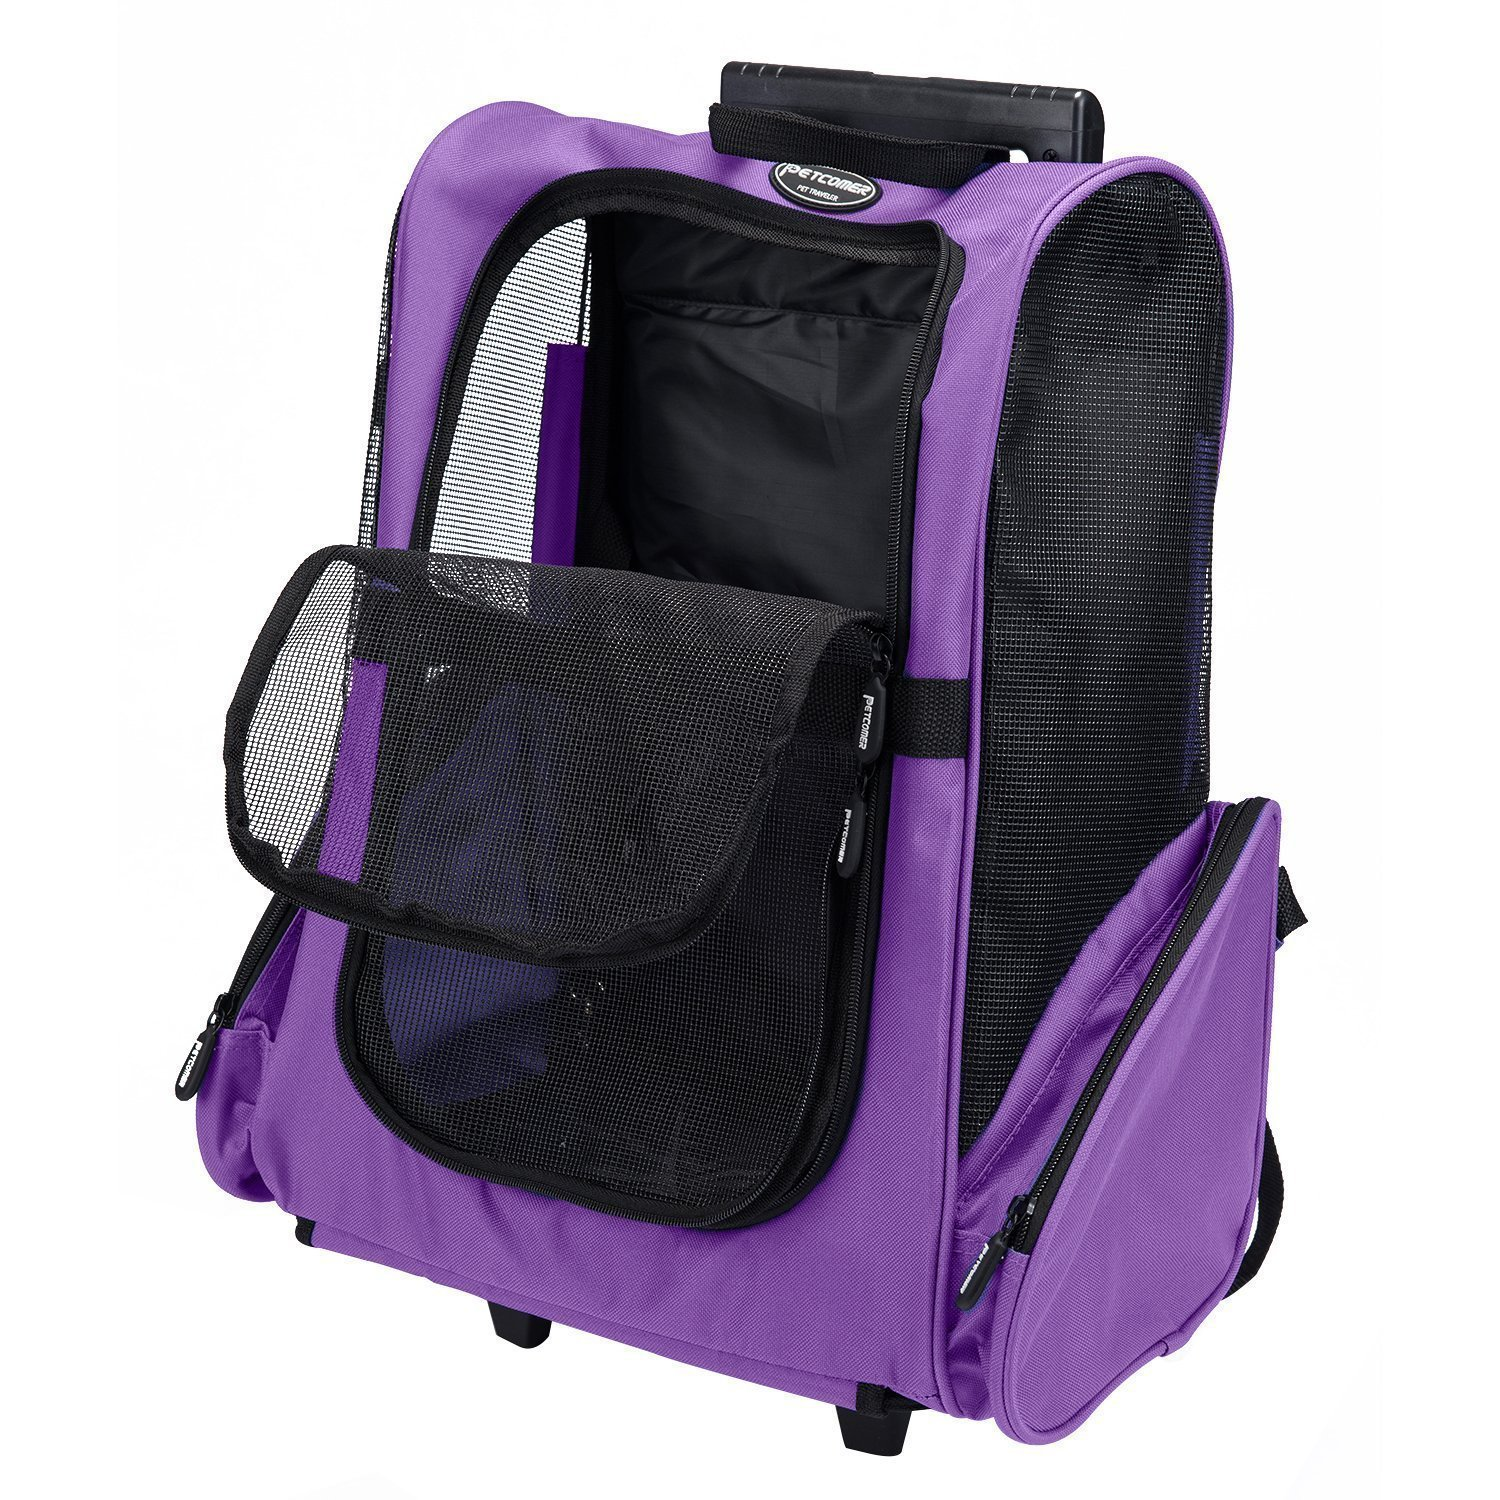 Pettom Roll Around 4-in-1 Pet Carrier Travel Backpack for Dogs & Cats&Small Animals Travel Tote Airline Approved (Small-Hold pet up to 10 lbs, Purple) by Pettom (Image #1)